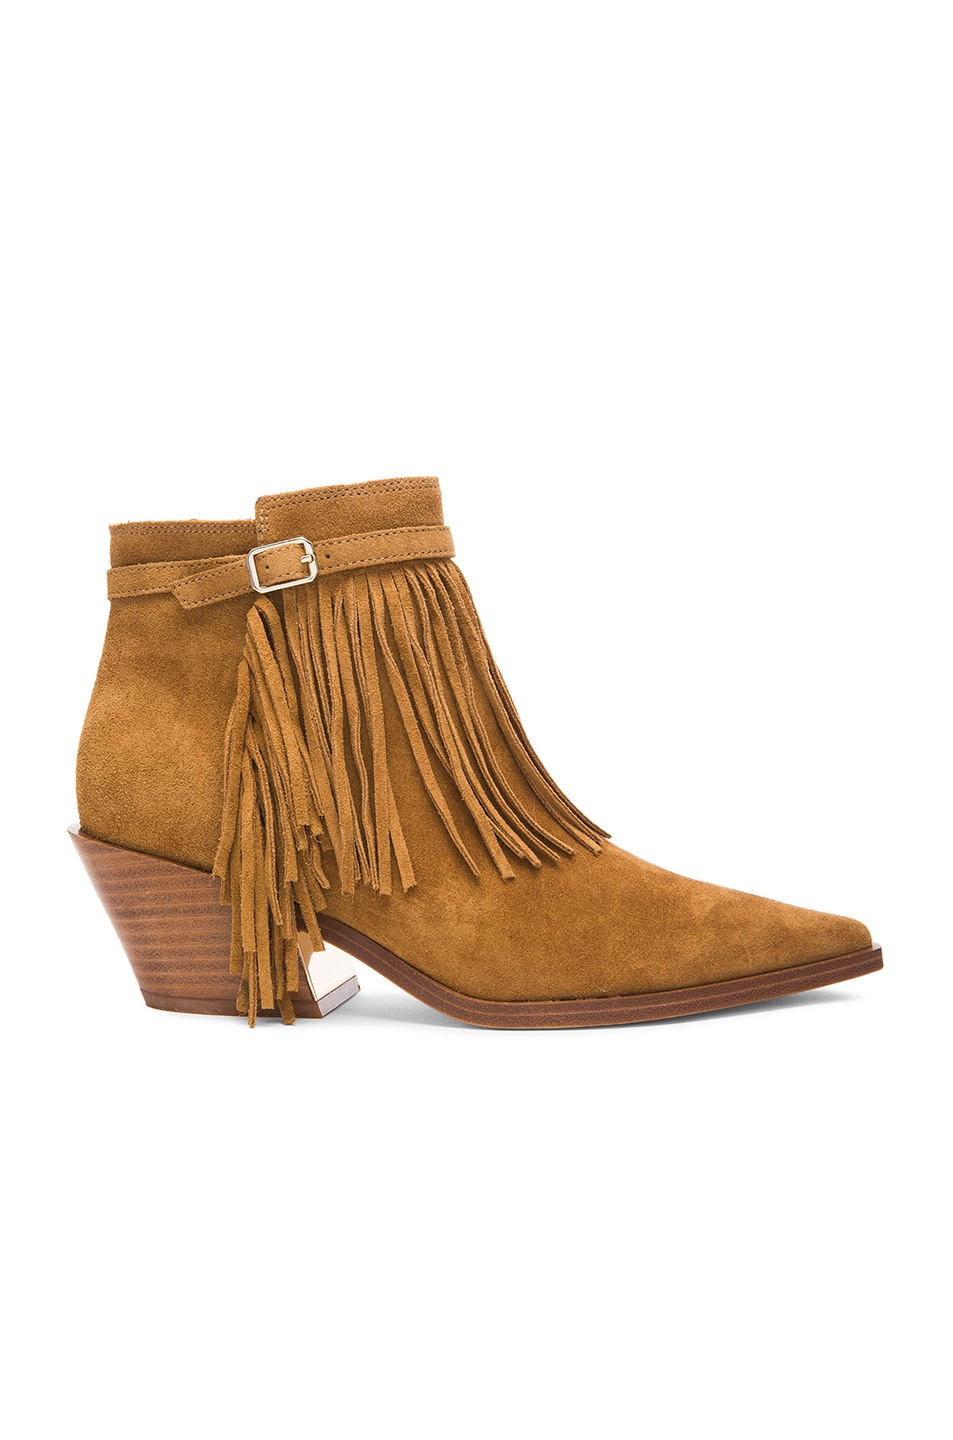 Image 1 of Sigerson Morrison Lena Suede Booties in Caramel